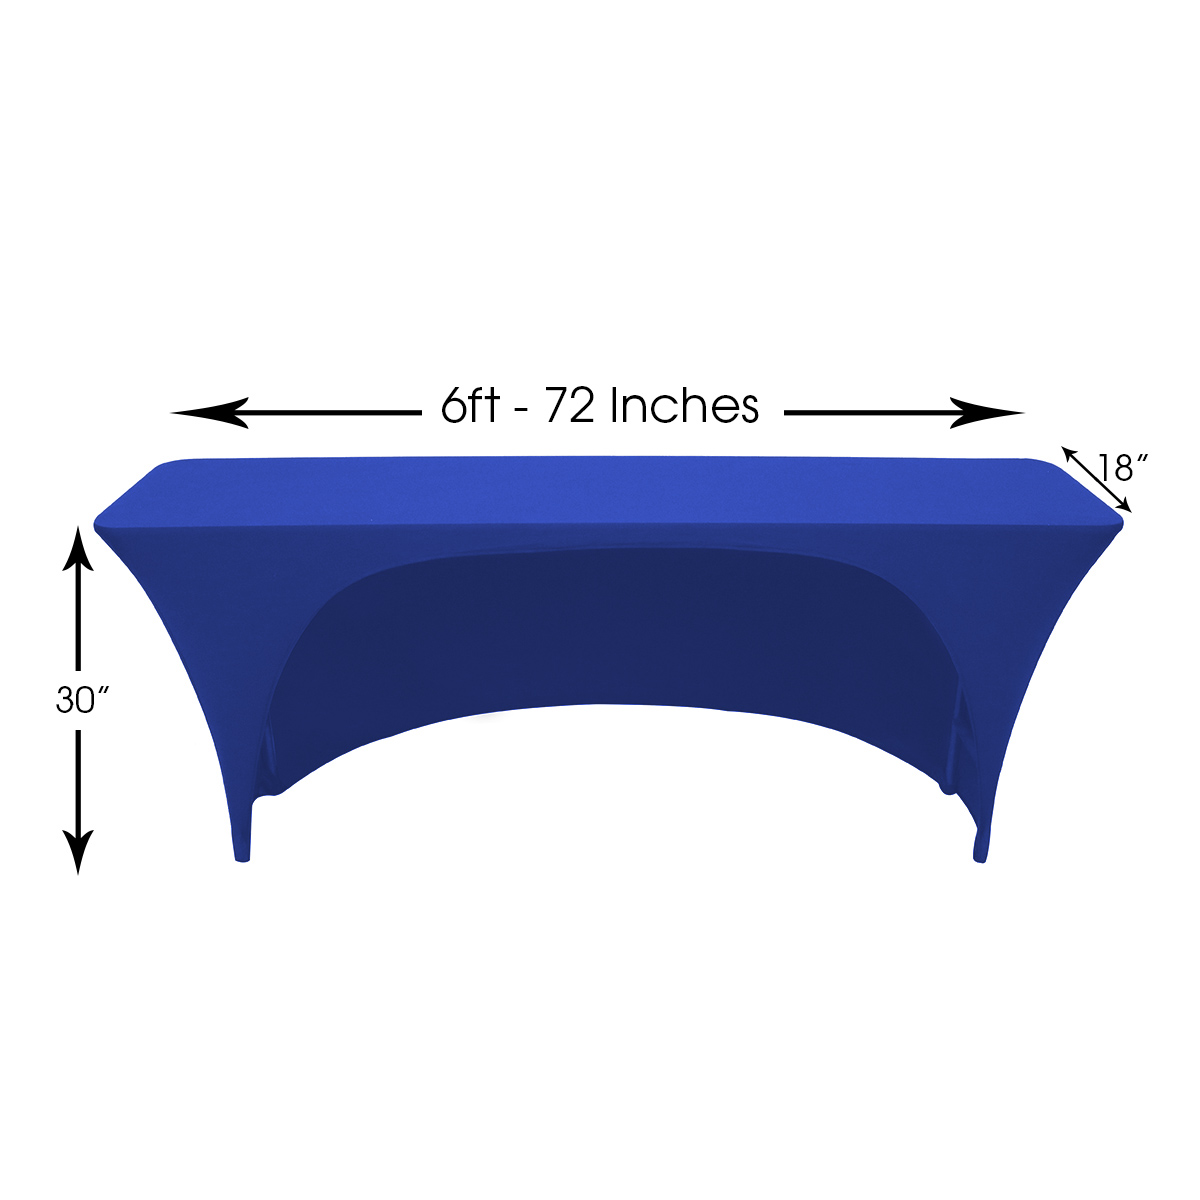 stretch-spandex-6ft-18-inches-open-back-rectangular-table-covers-royal-dimensions.jpg